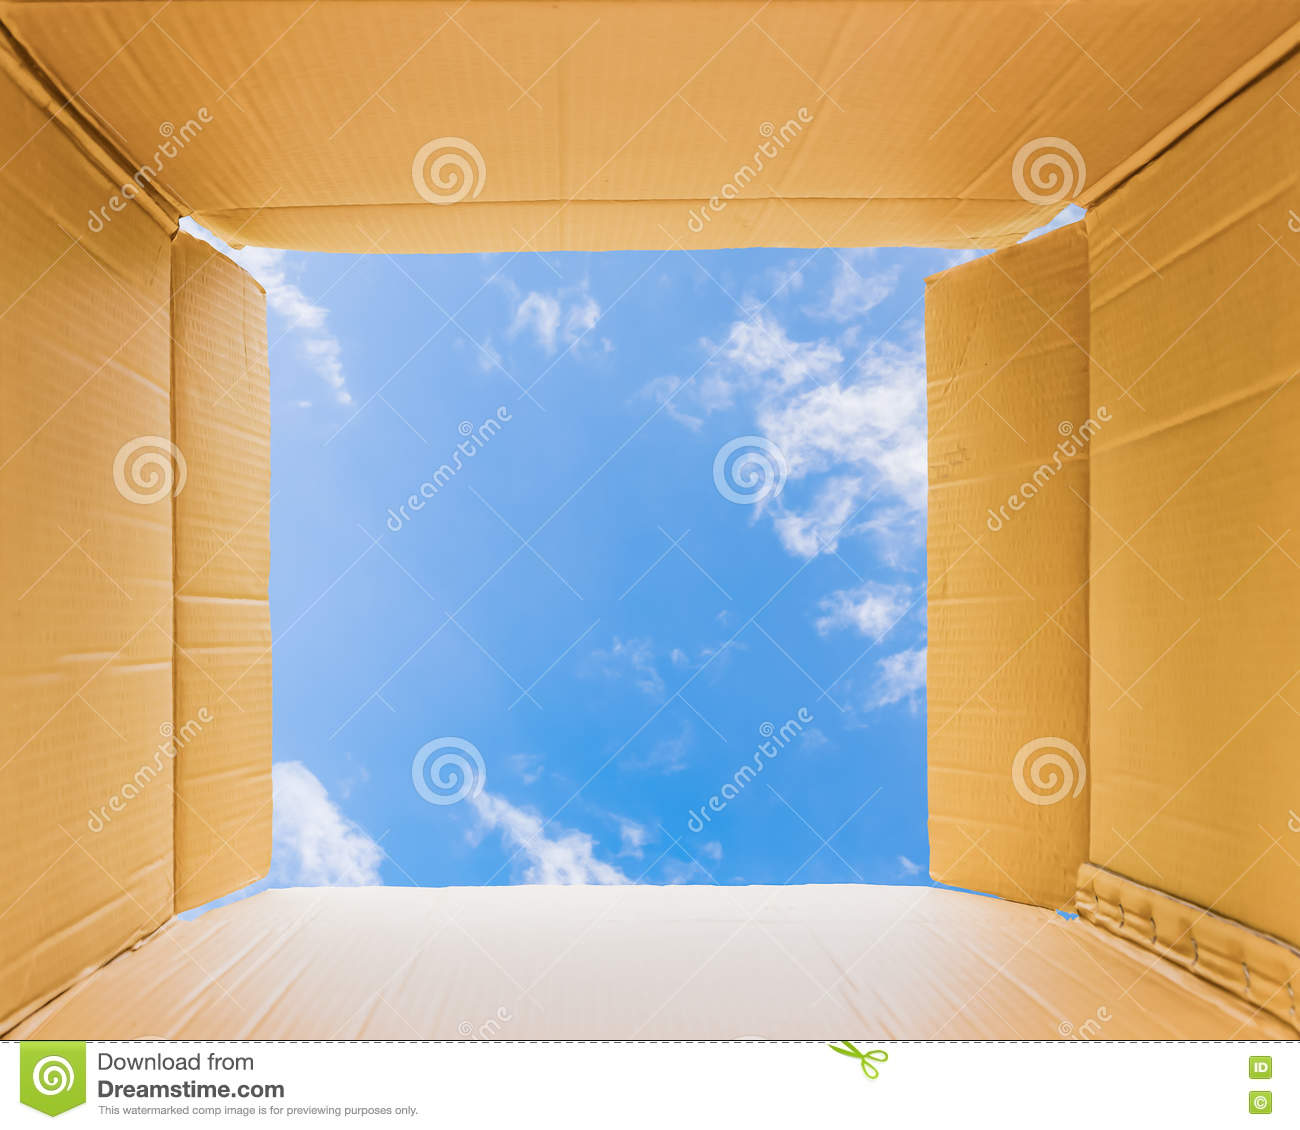 Thinking Outside The Open Box To Sky Stock Photo - Image of